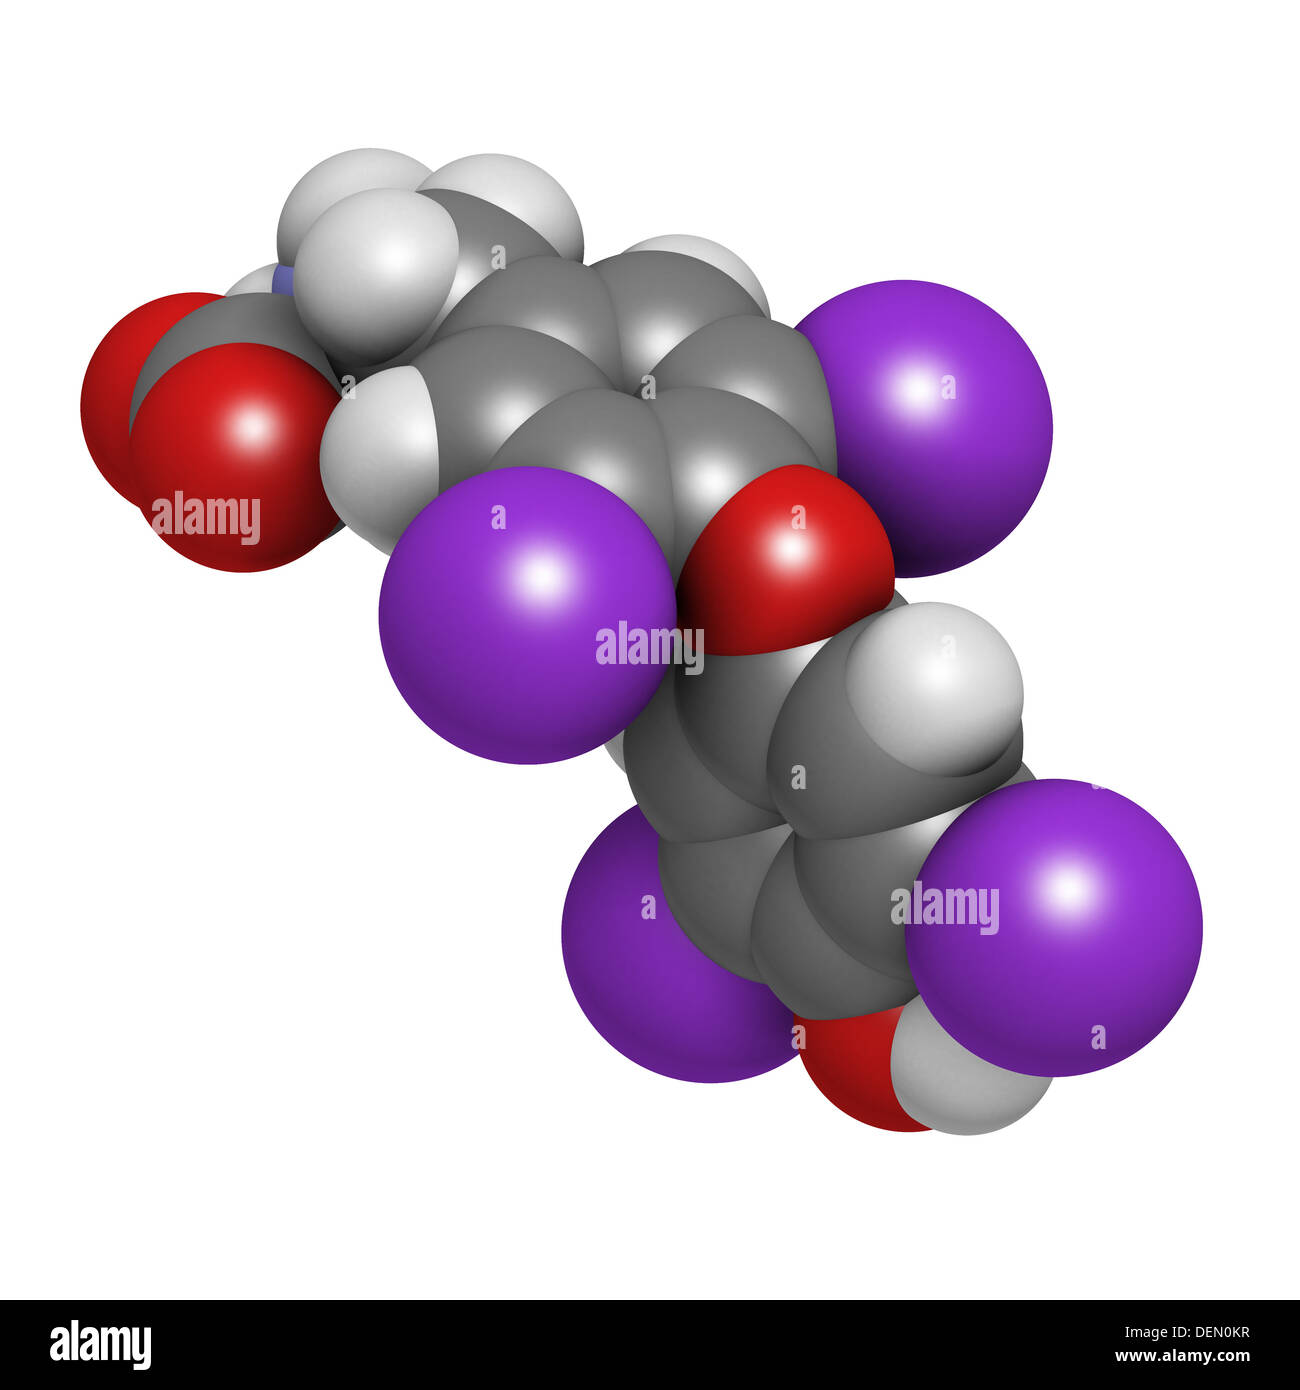 Thyroxine molecule, chemical structure. Thyroid gland hormone that plays a role in energy metabolism regulation. Stock Photo